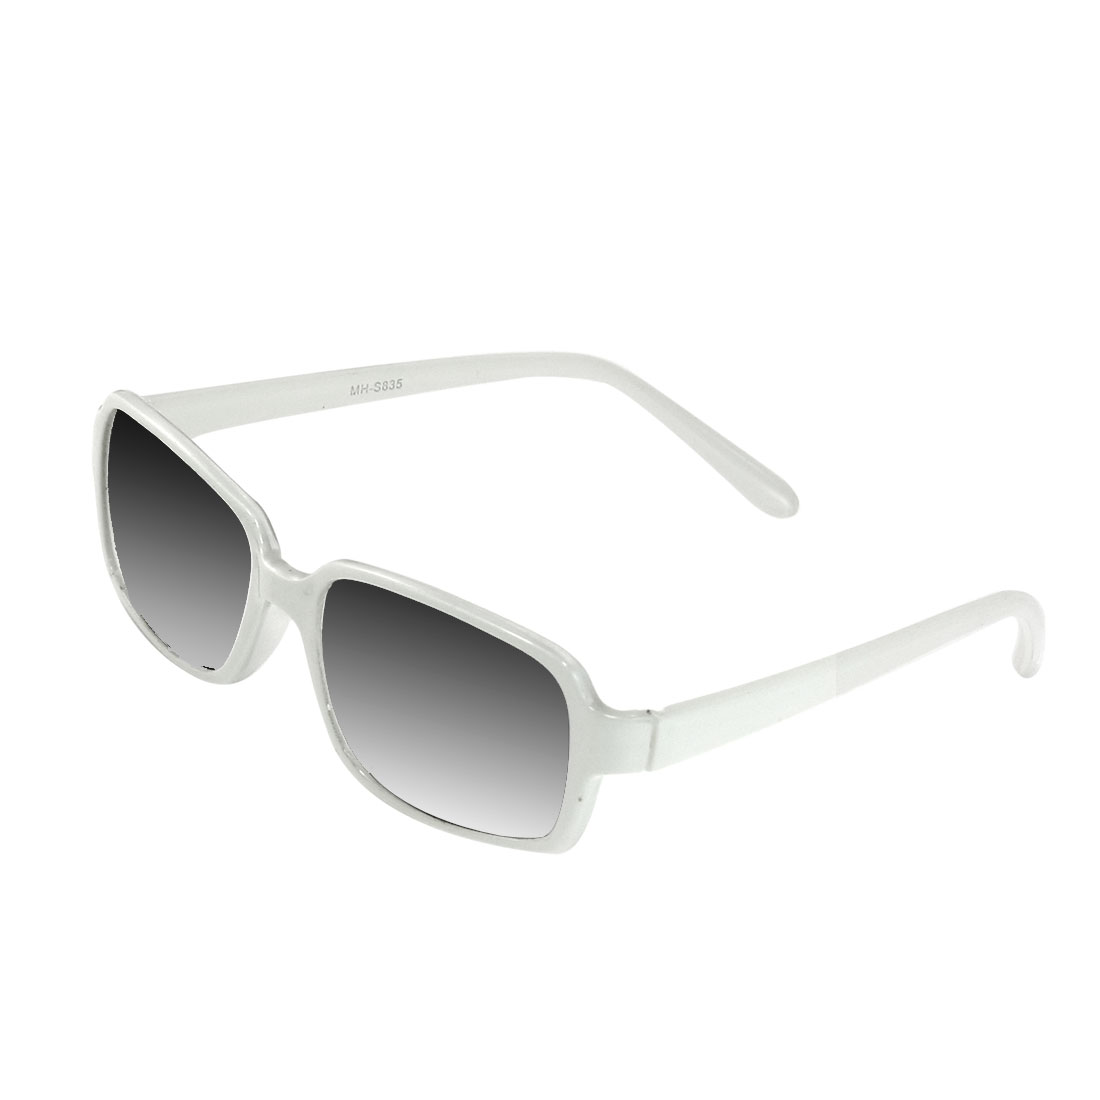 Gray Lens White Plastic Full Frame Sunglasses Eyewear for Women